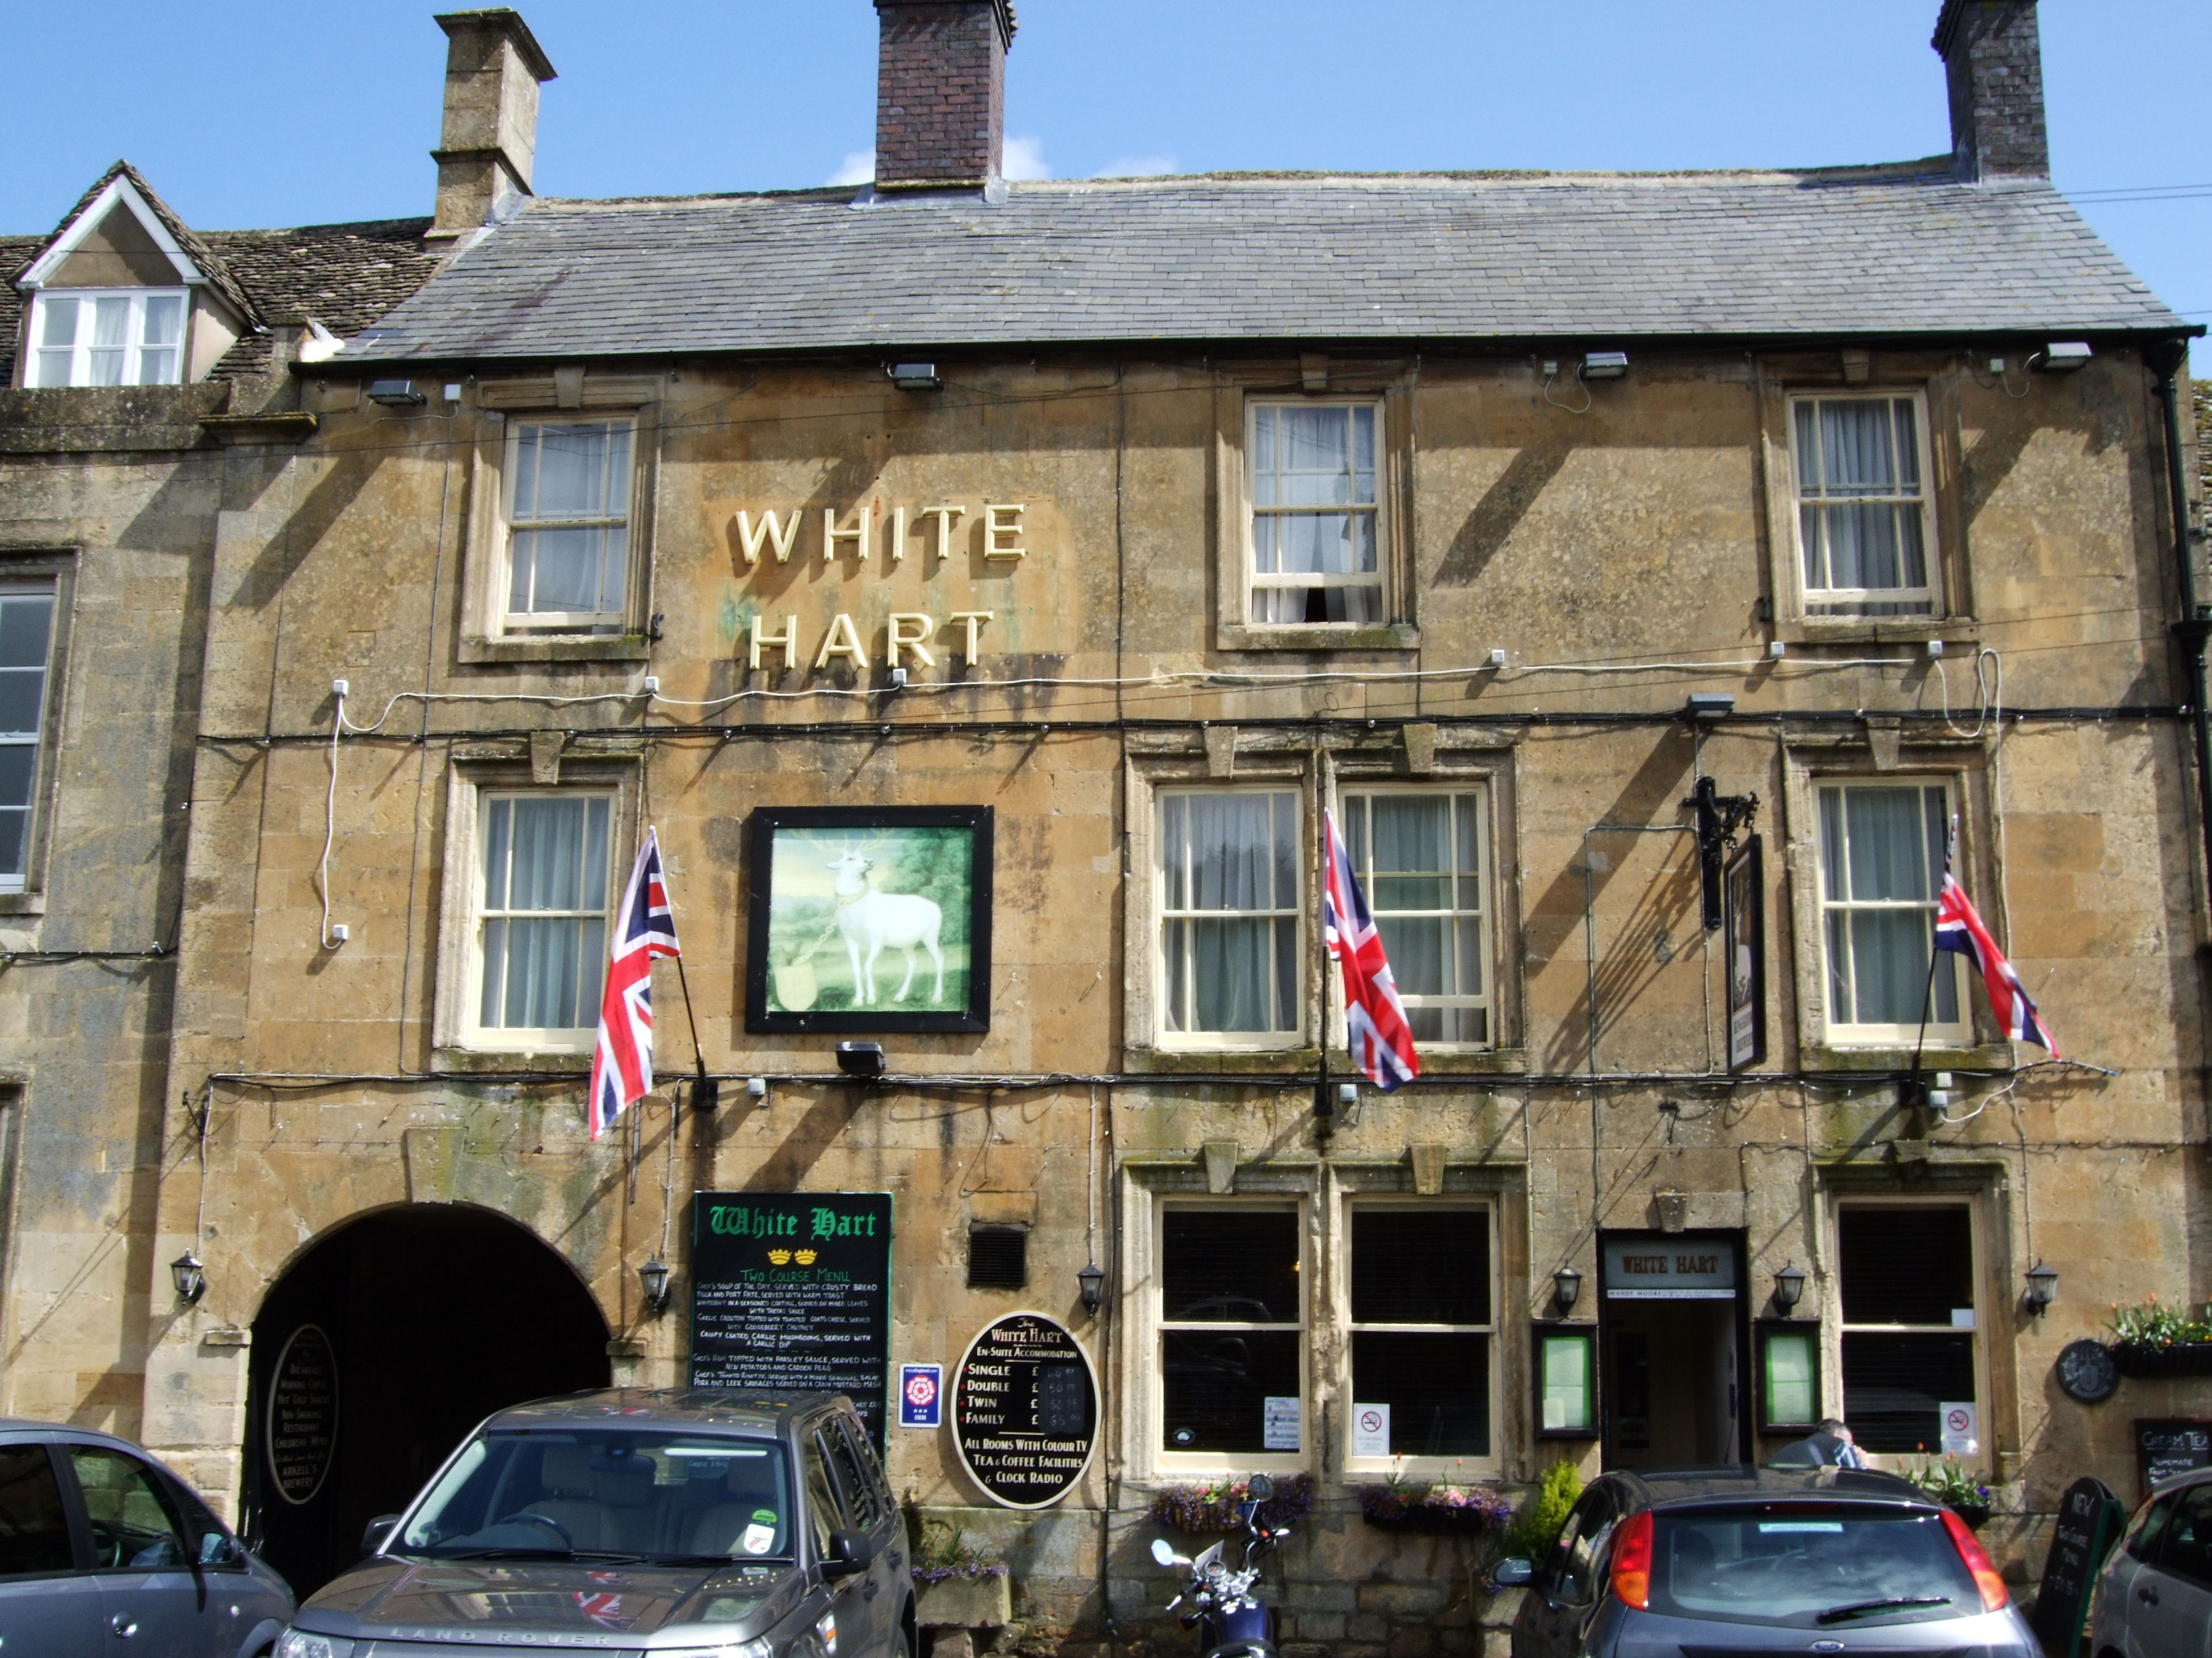 White Hart Inn >> File:The White Hart Inn, Stow-on-the-Wold.jpg - Wikimedia Commons